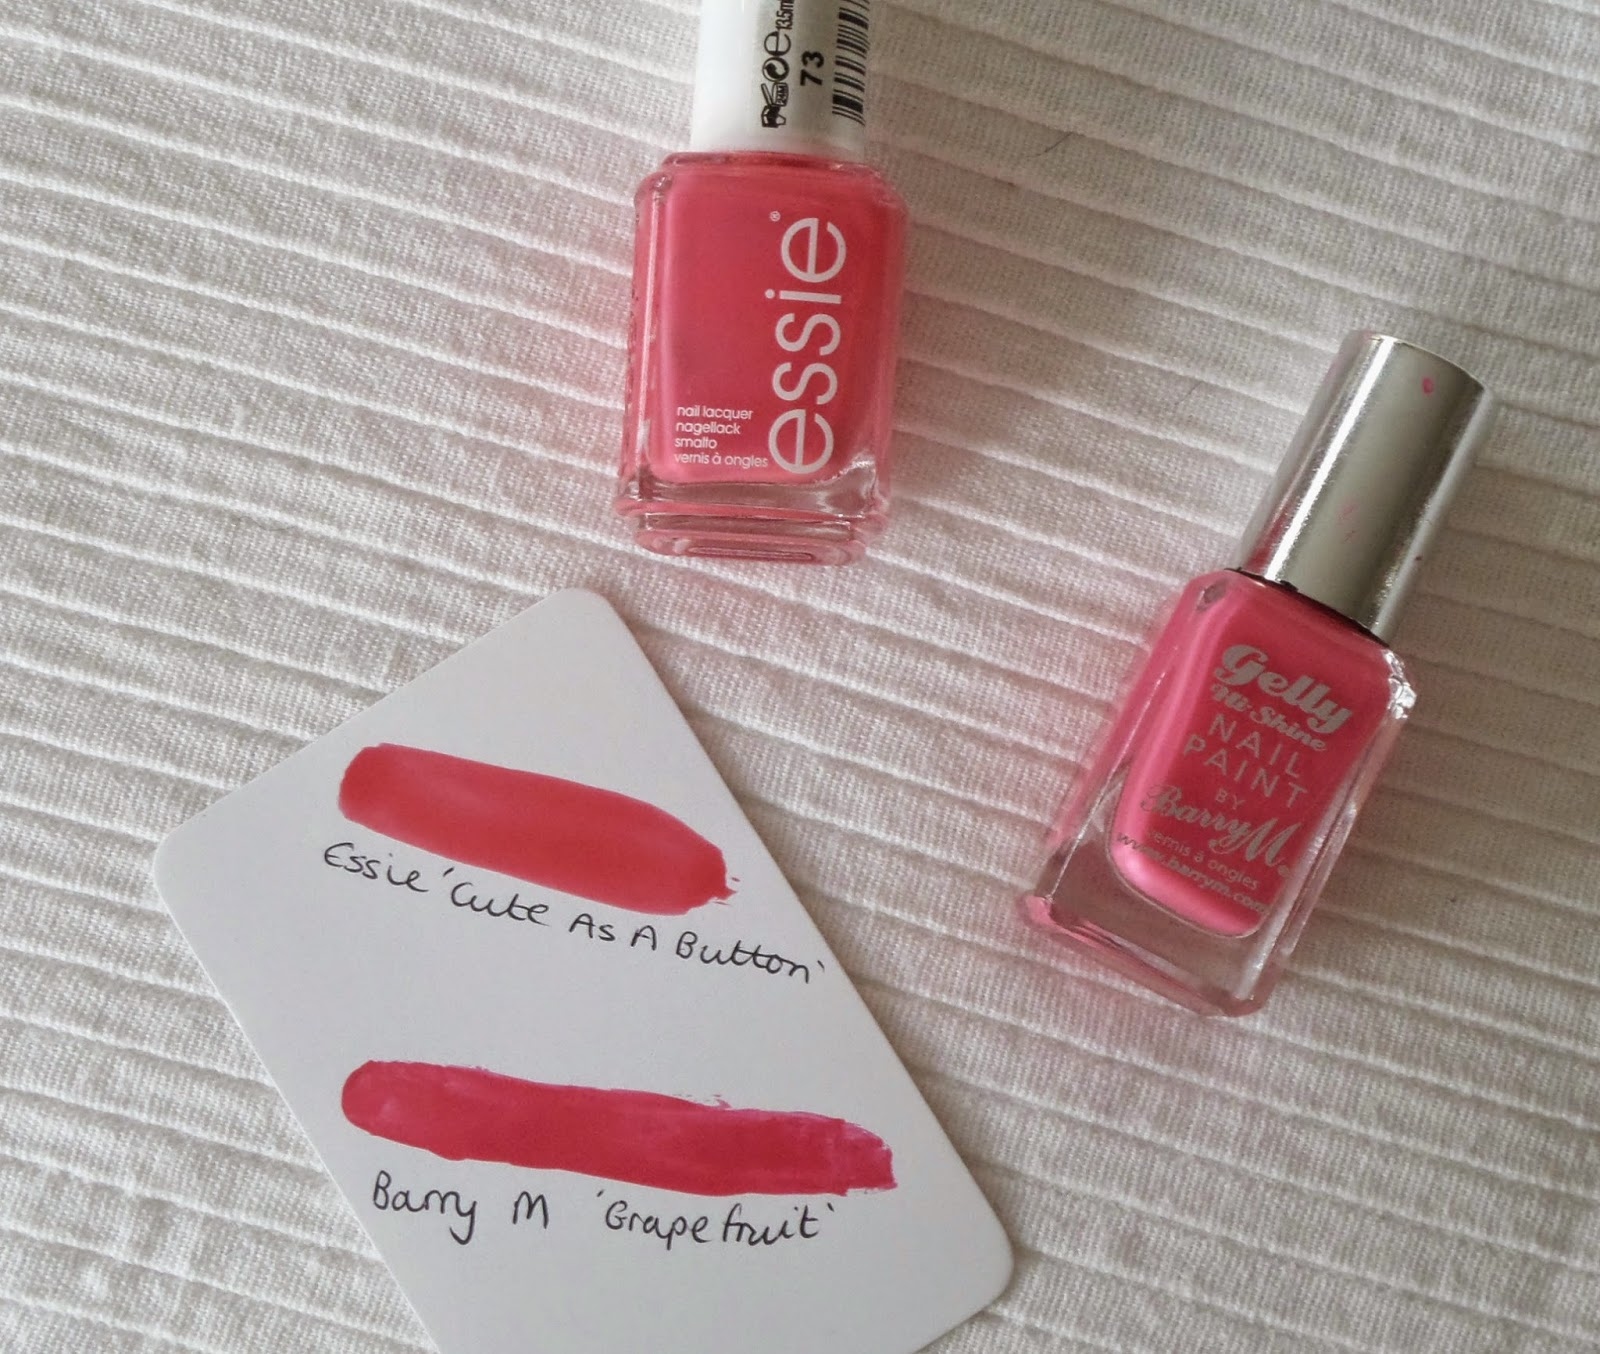 Spring and Summer Essie Dupes, Essie Cute as a Button, Barry M Grapefruit